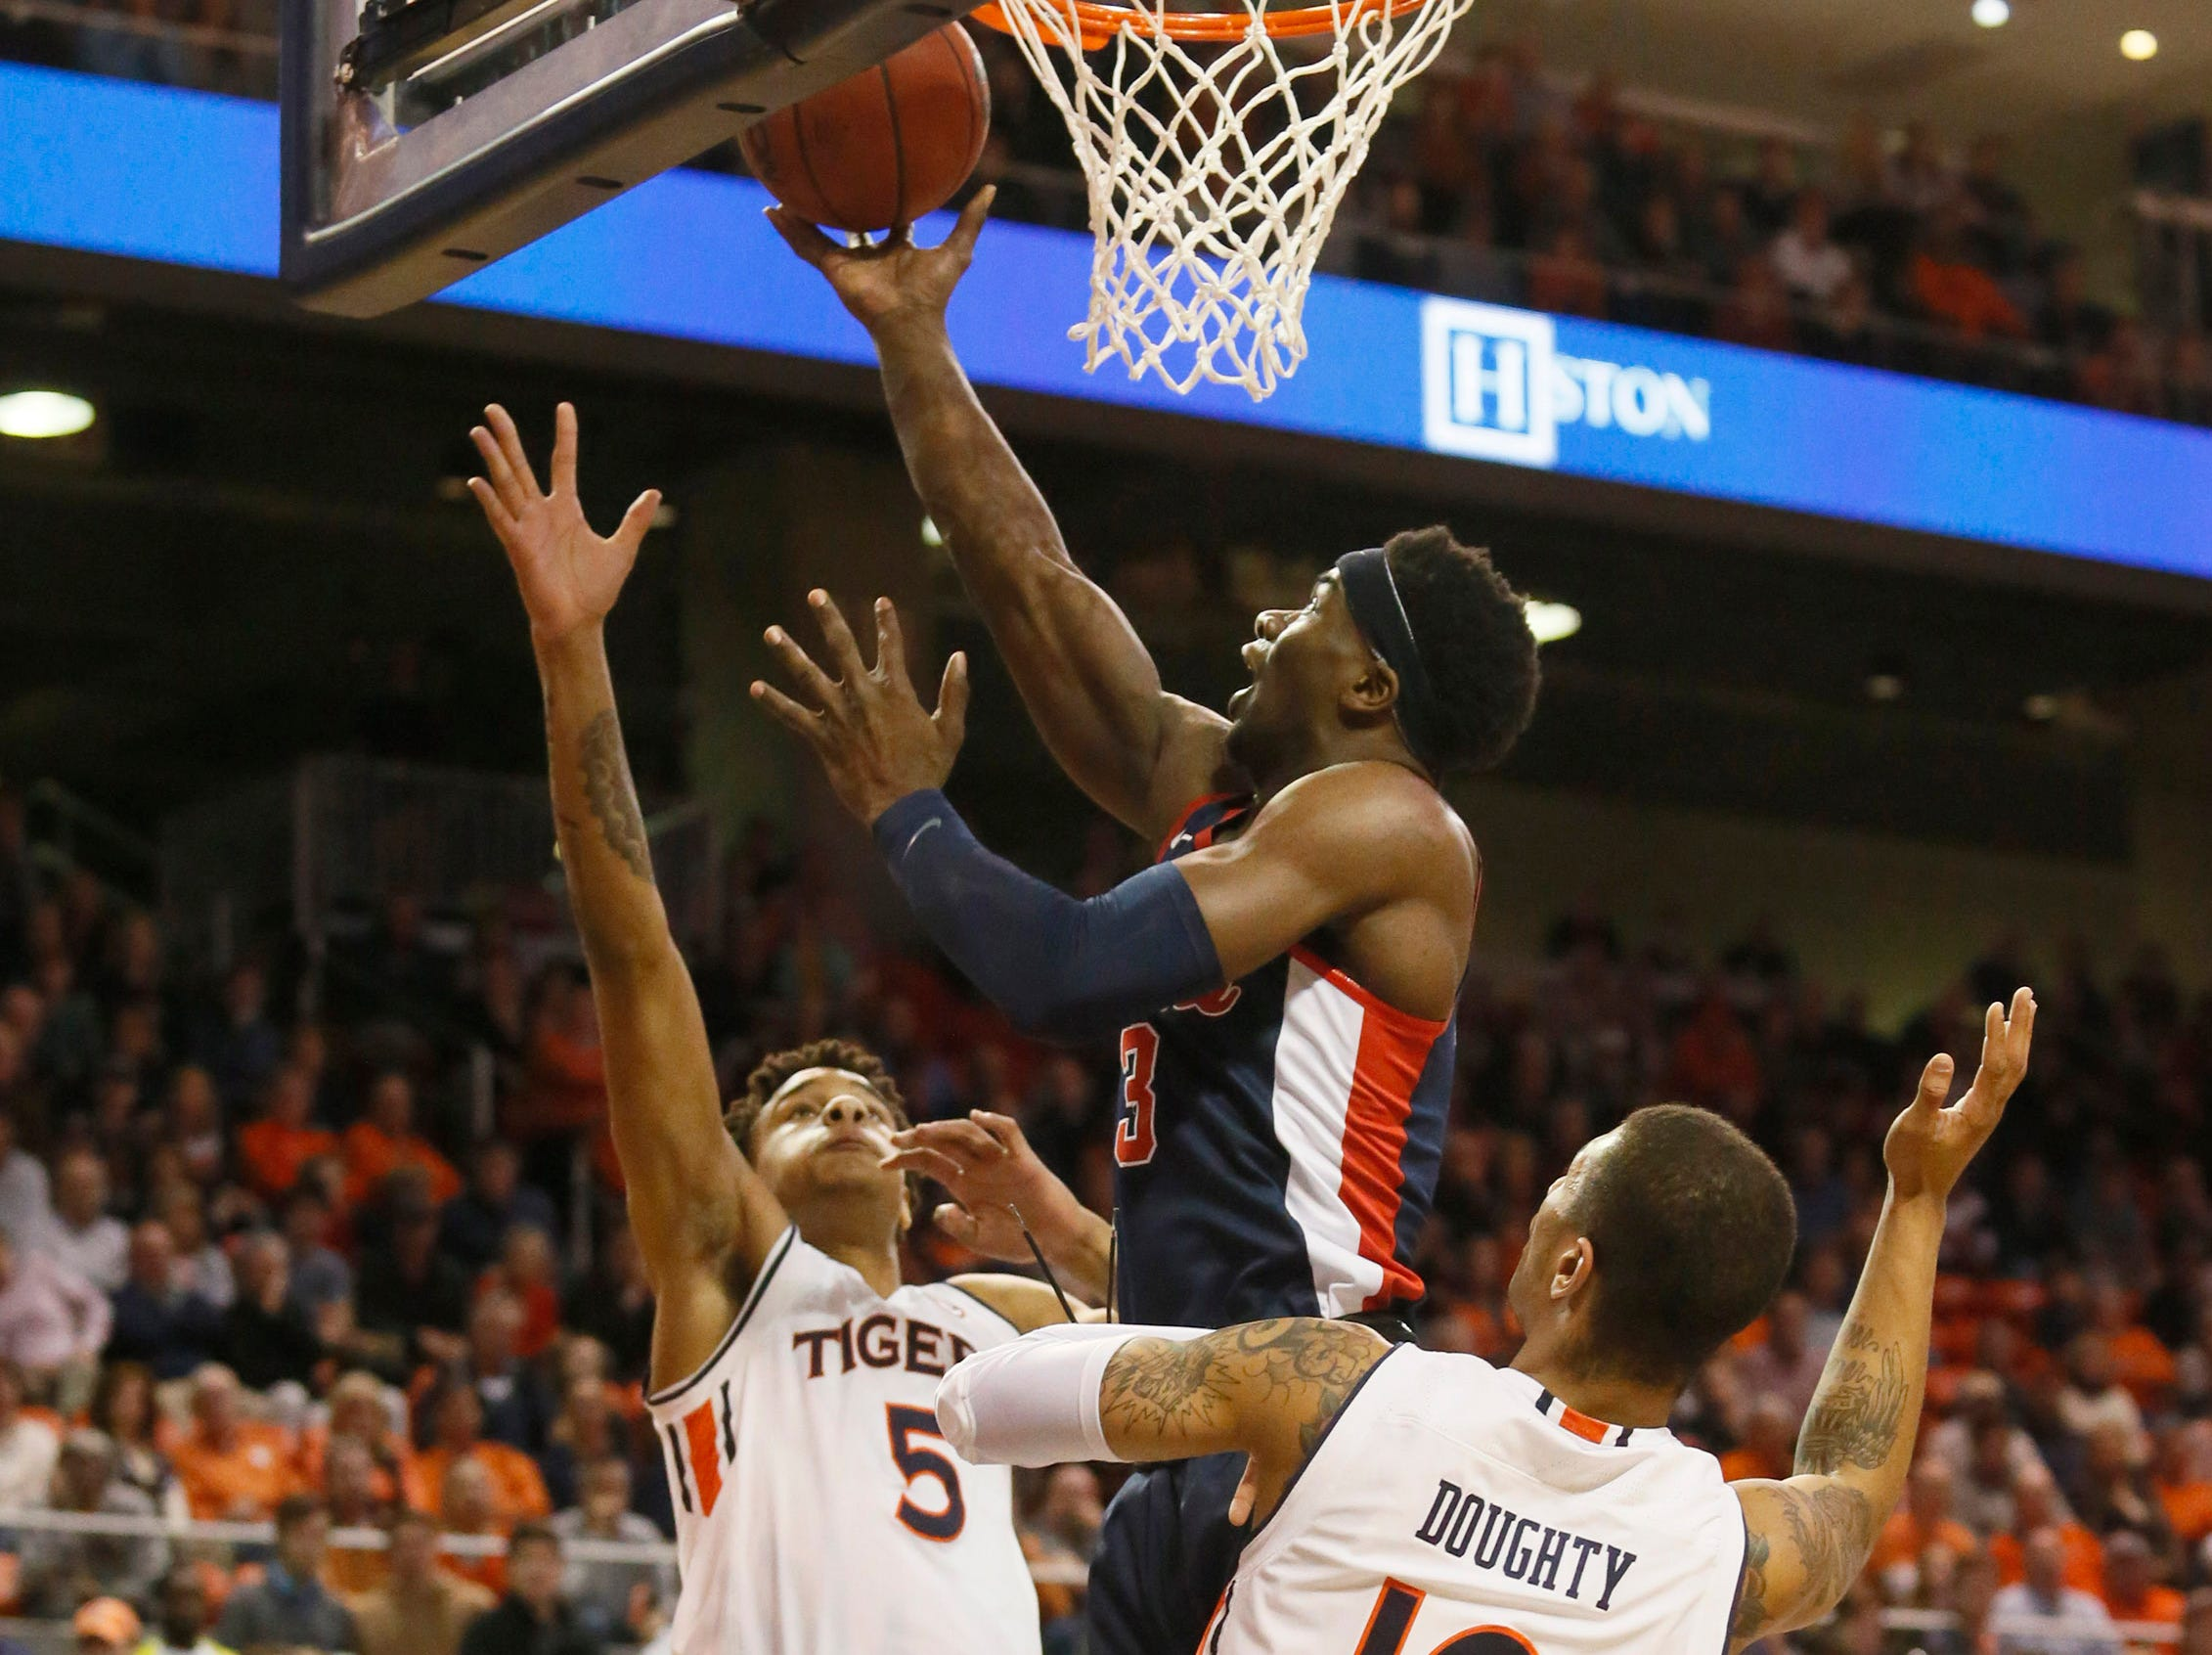 Feb 13, 2019; Auburn, AL, USA; Ole Miss Rebels guard Terence Davis (3) takes a shot between Auburn Tigers forward Chuma Okeke (5) and guard Samir Doughty (10) during the first half at Auburn Arena. Mandatory Credit: John Reed-USA TODAY Sports